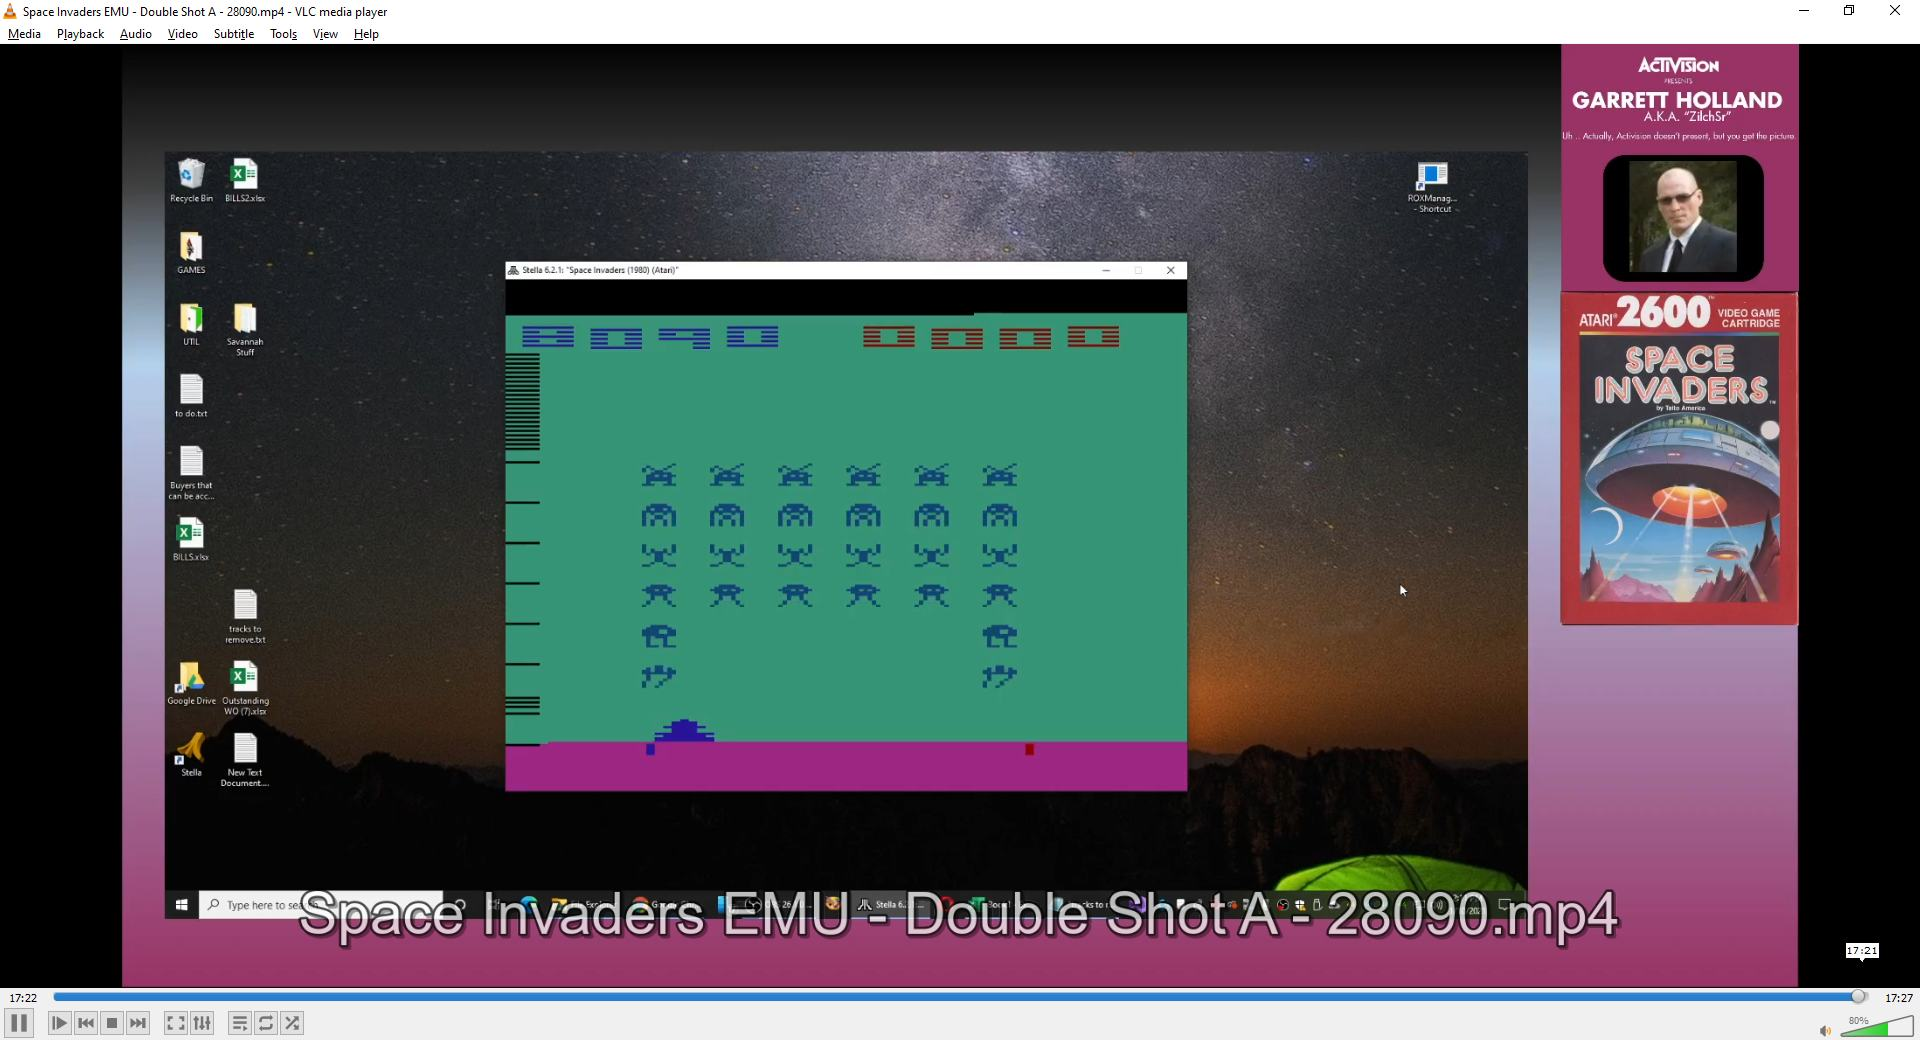 ZilchSr: Space Invaders [Cart-Fry: Double Shots] (Atari 2600 Emulated Expert/A Mode) 28,090 points on 2021-01-10 13:25:00